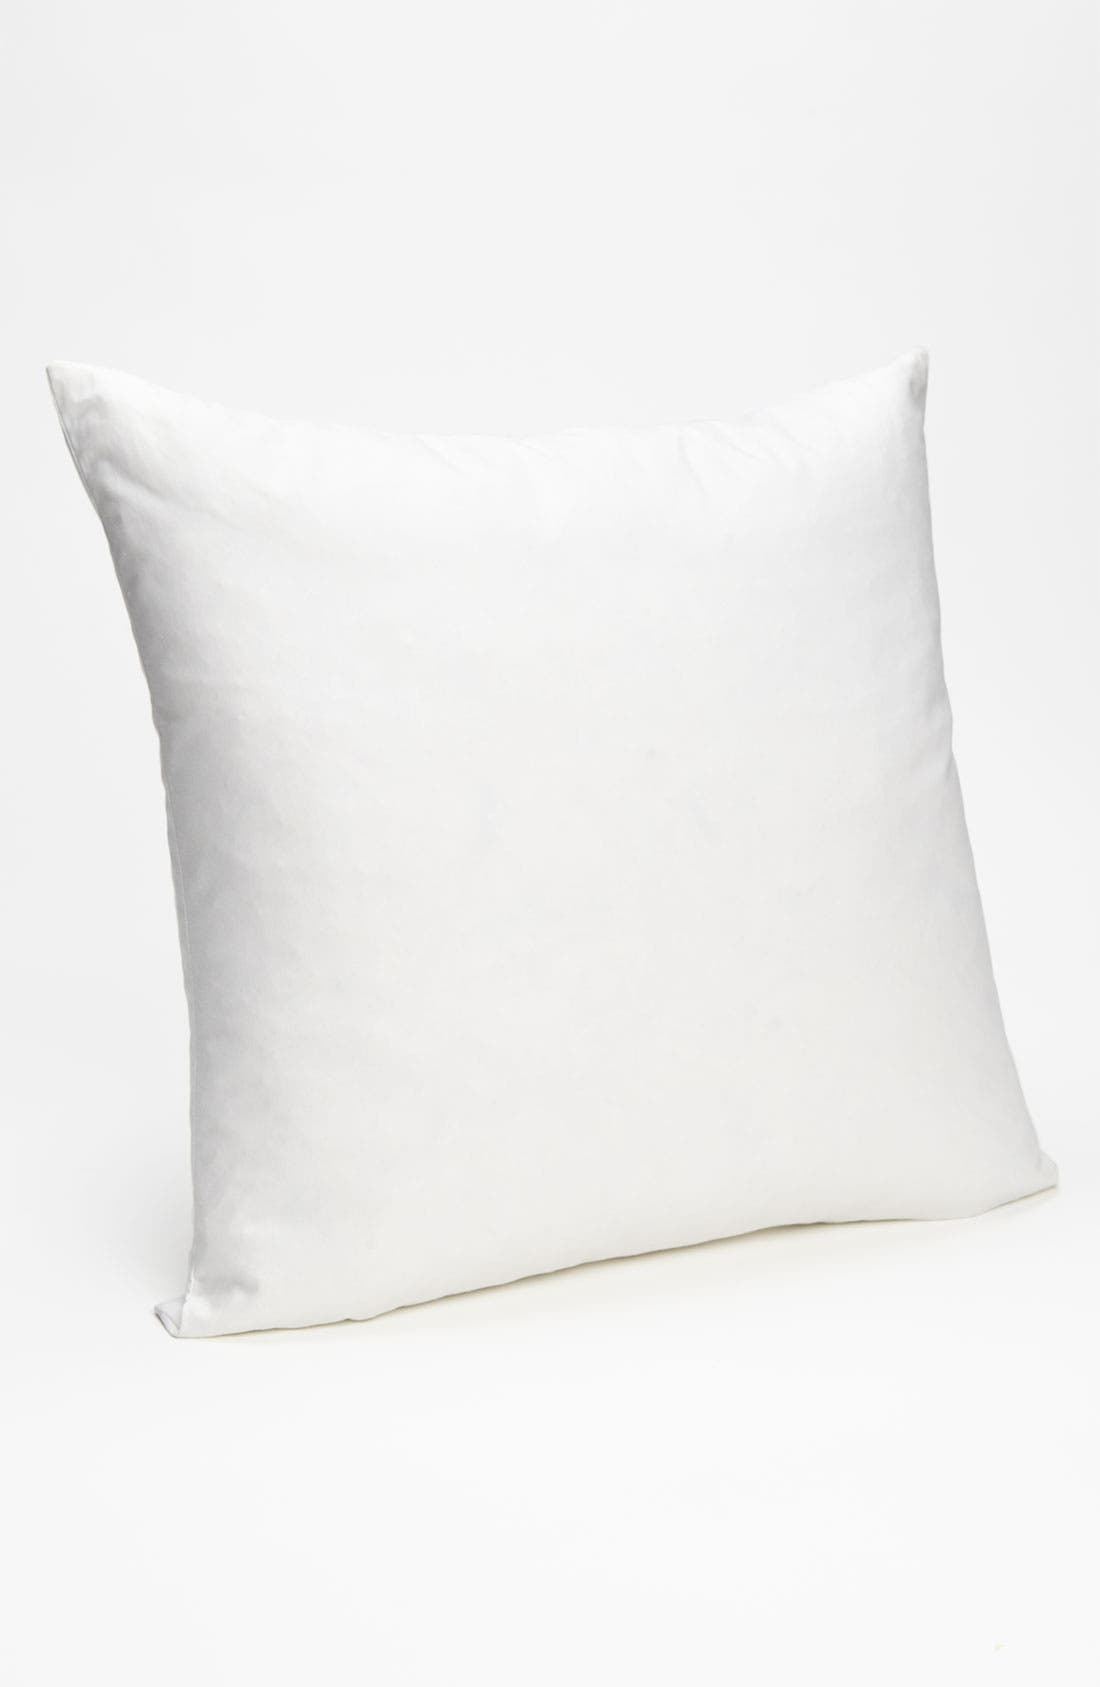 Alternate Image 1 Selected - Nordstrom at Home 20x20 Feather & Down Pillow Insert (2 for $26)